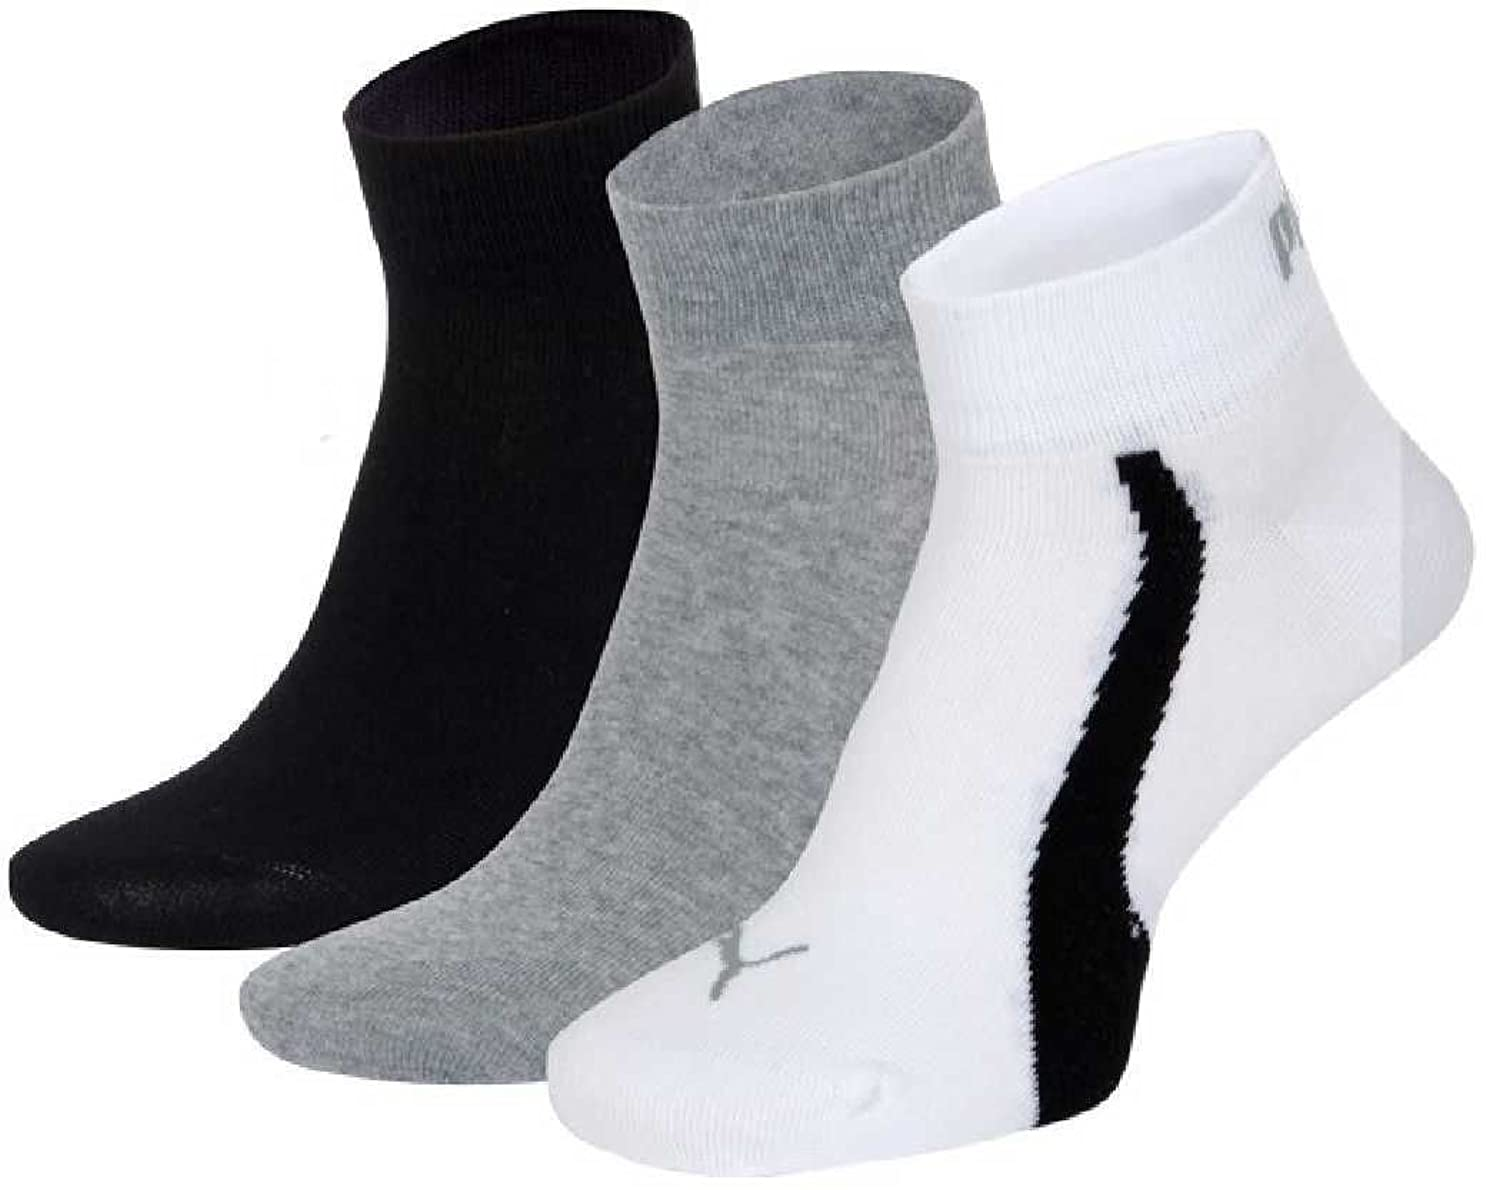 6 pair Puma Quarter Sneaker Socks Unisex Mens & Ladies In 3 Colours